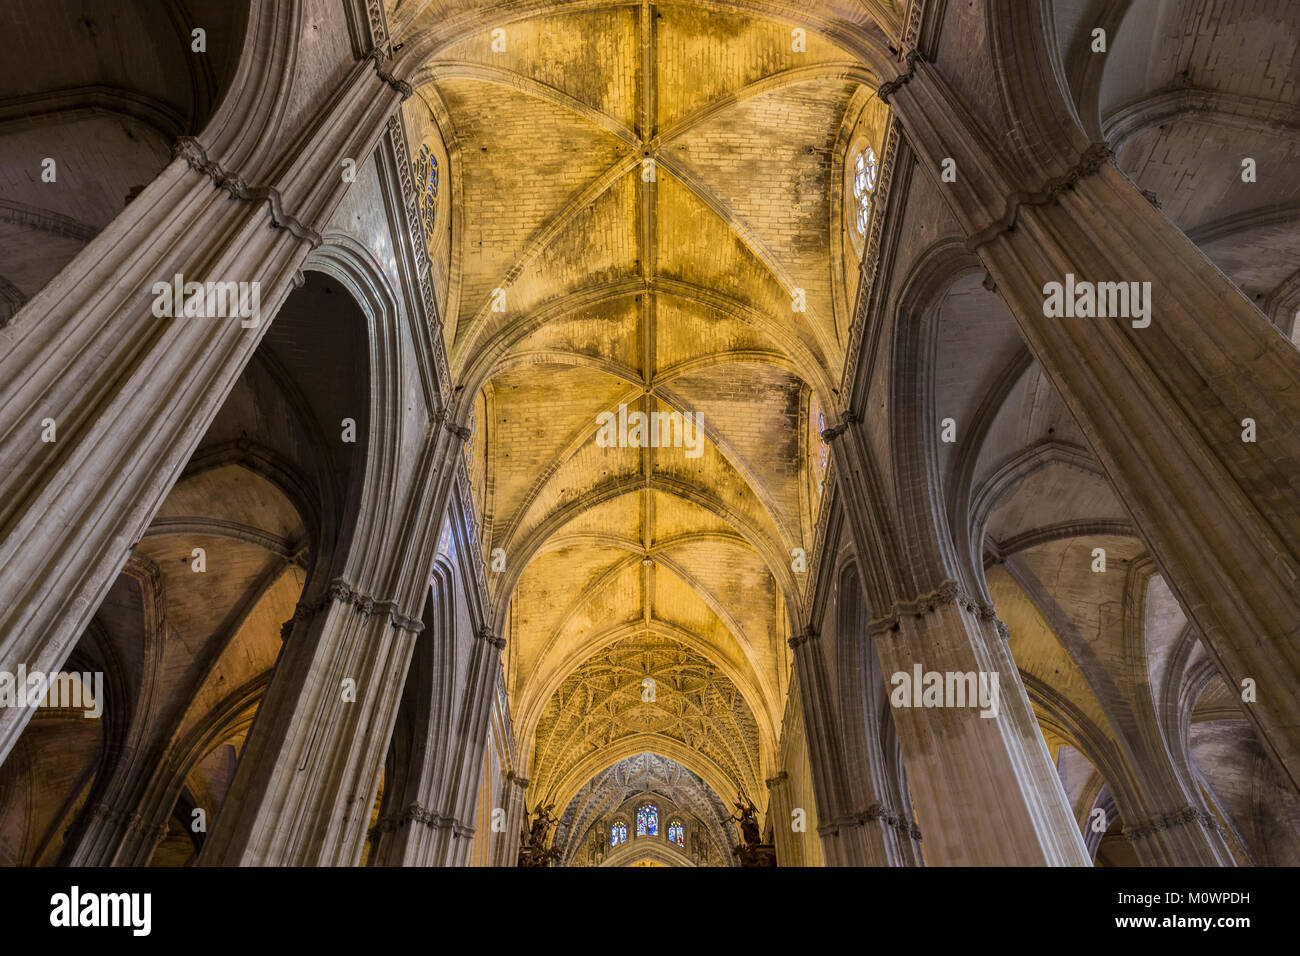 Ceiling and columns of the Cathedral of Seville, Andalusia, Spain. - Stock Image